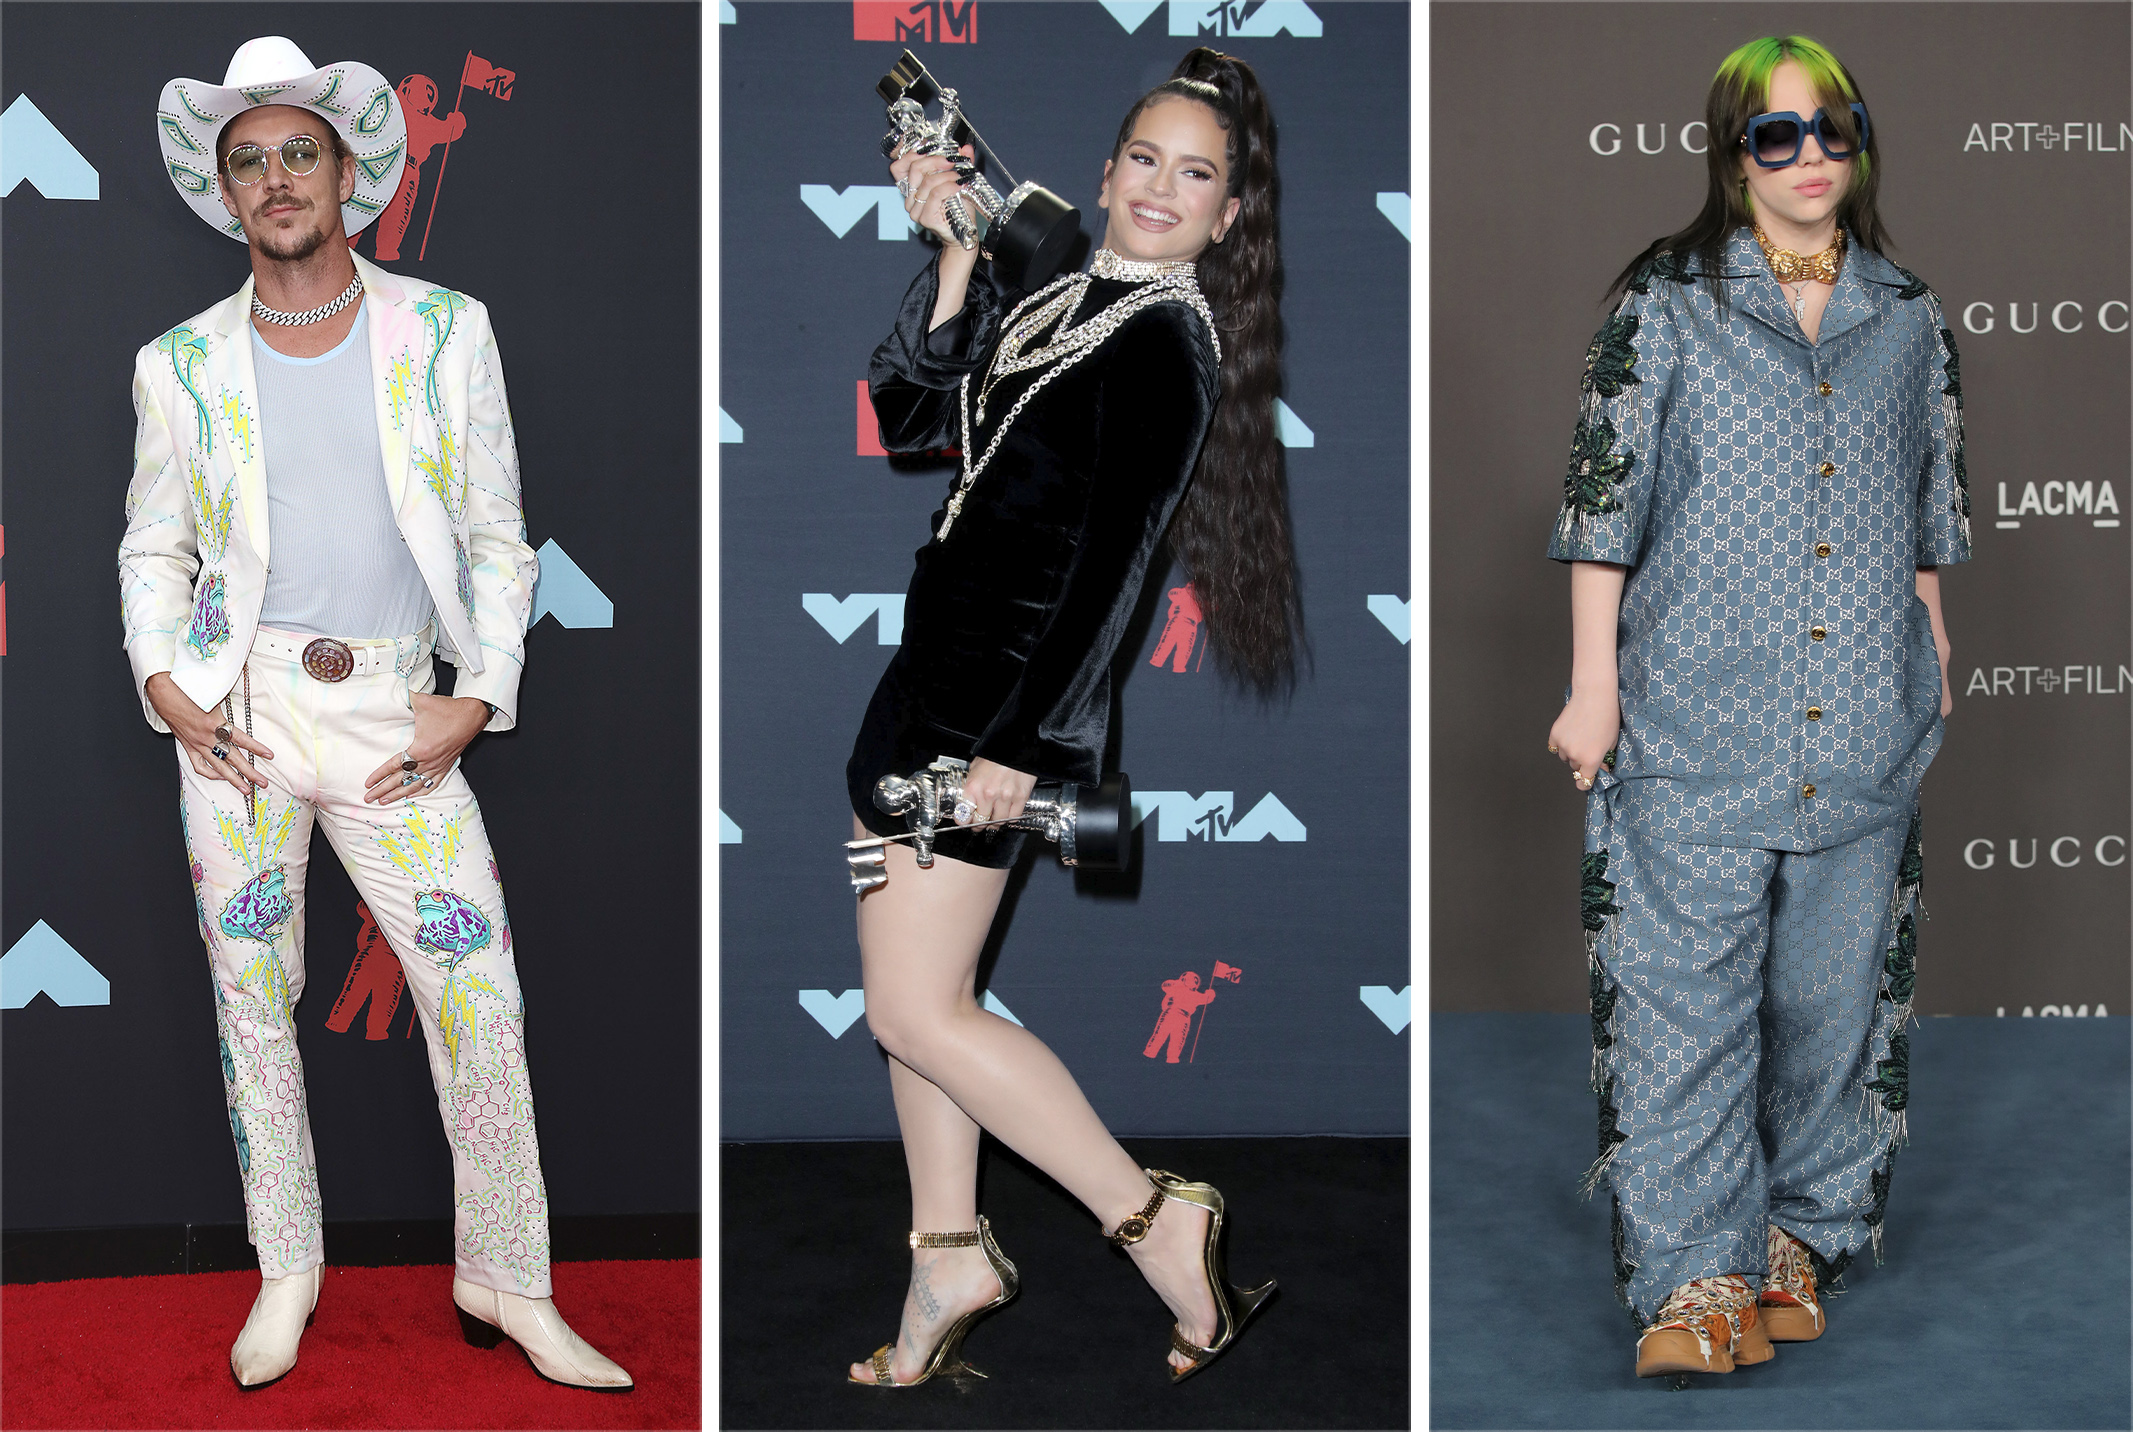 grammys 2020 billie eilish s stylist on prepping for the big night wwd grammys 2020 billie eilish s stylist